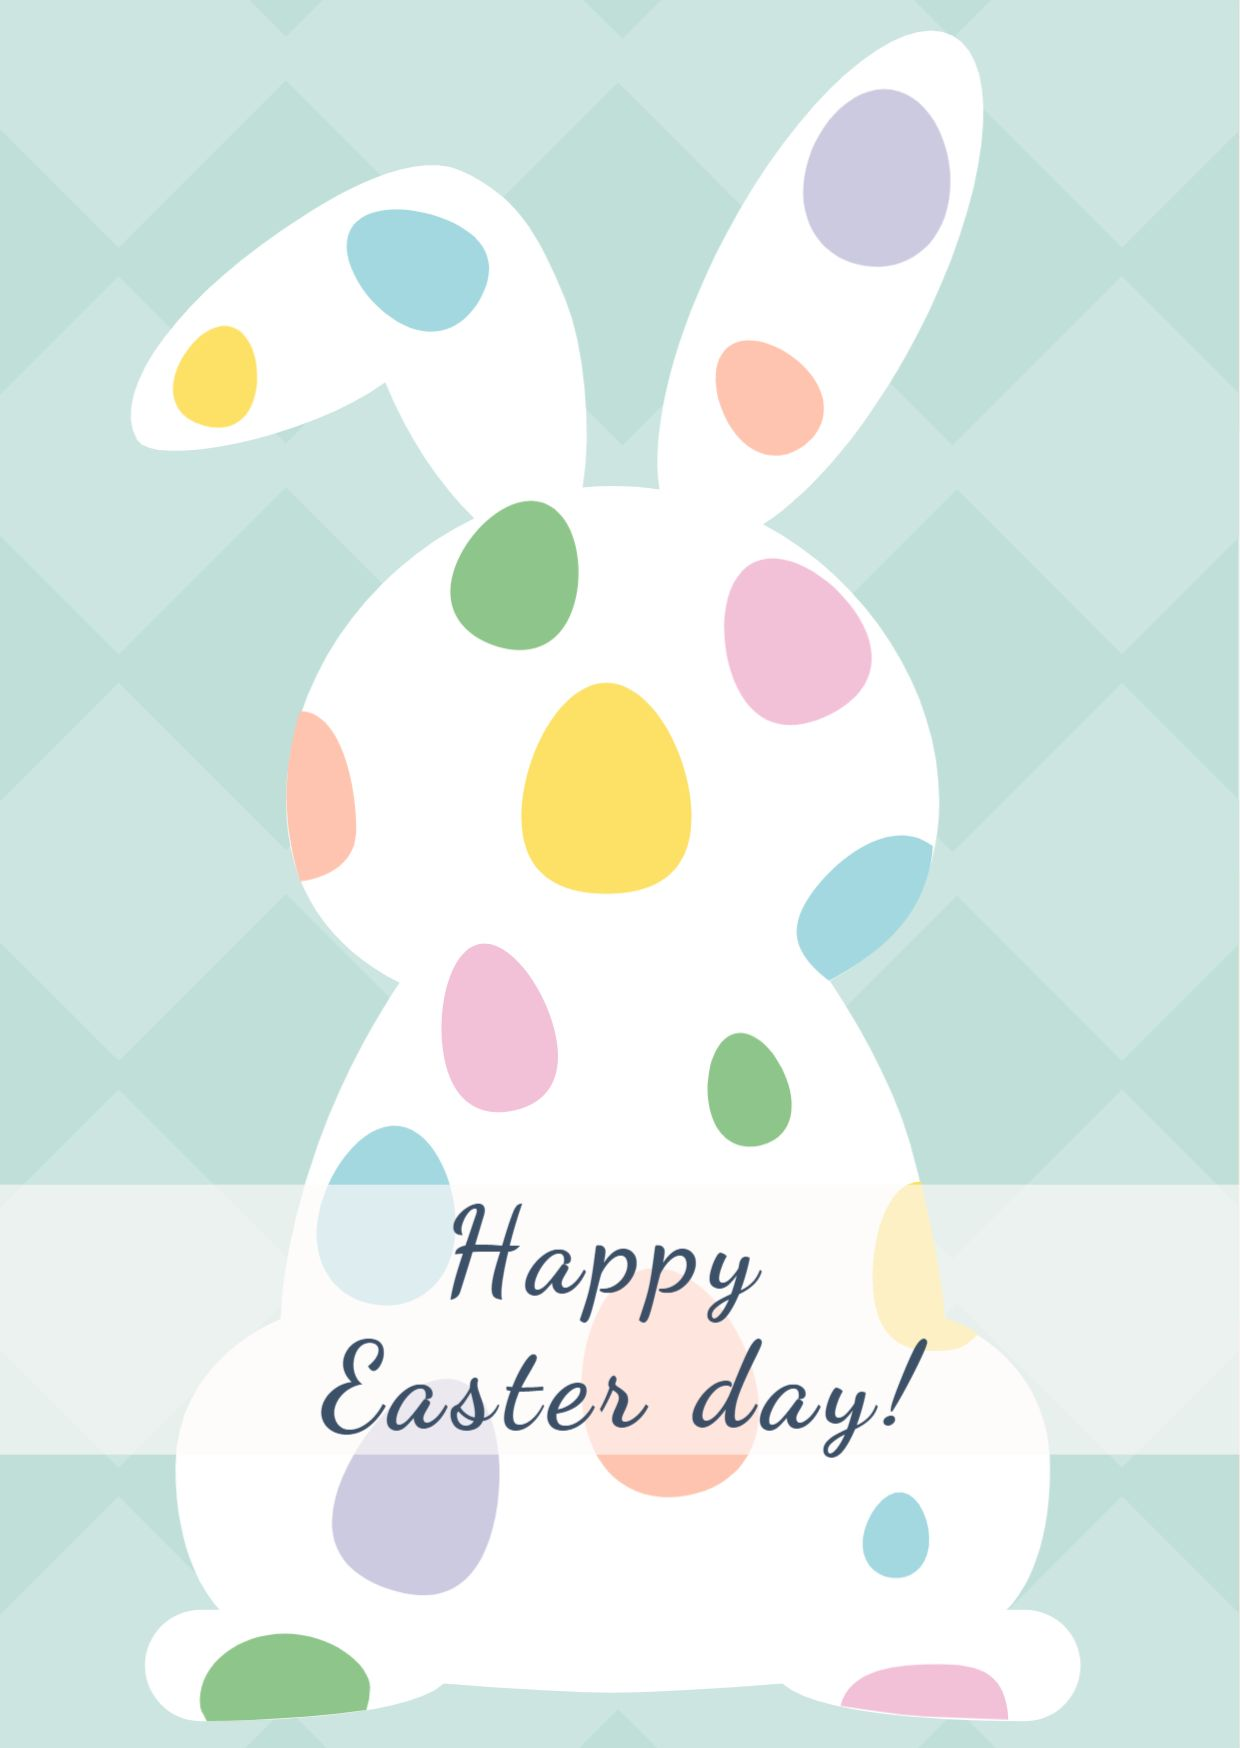 Easter Day Celebration Greetings Card